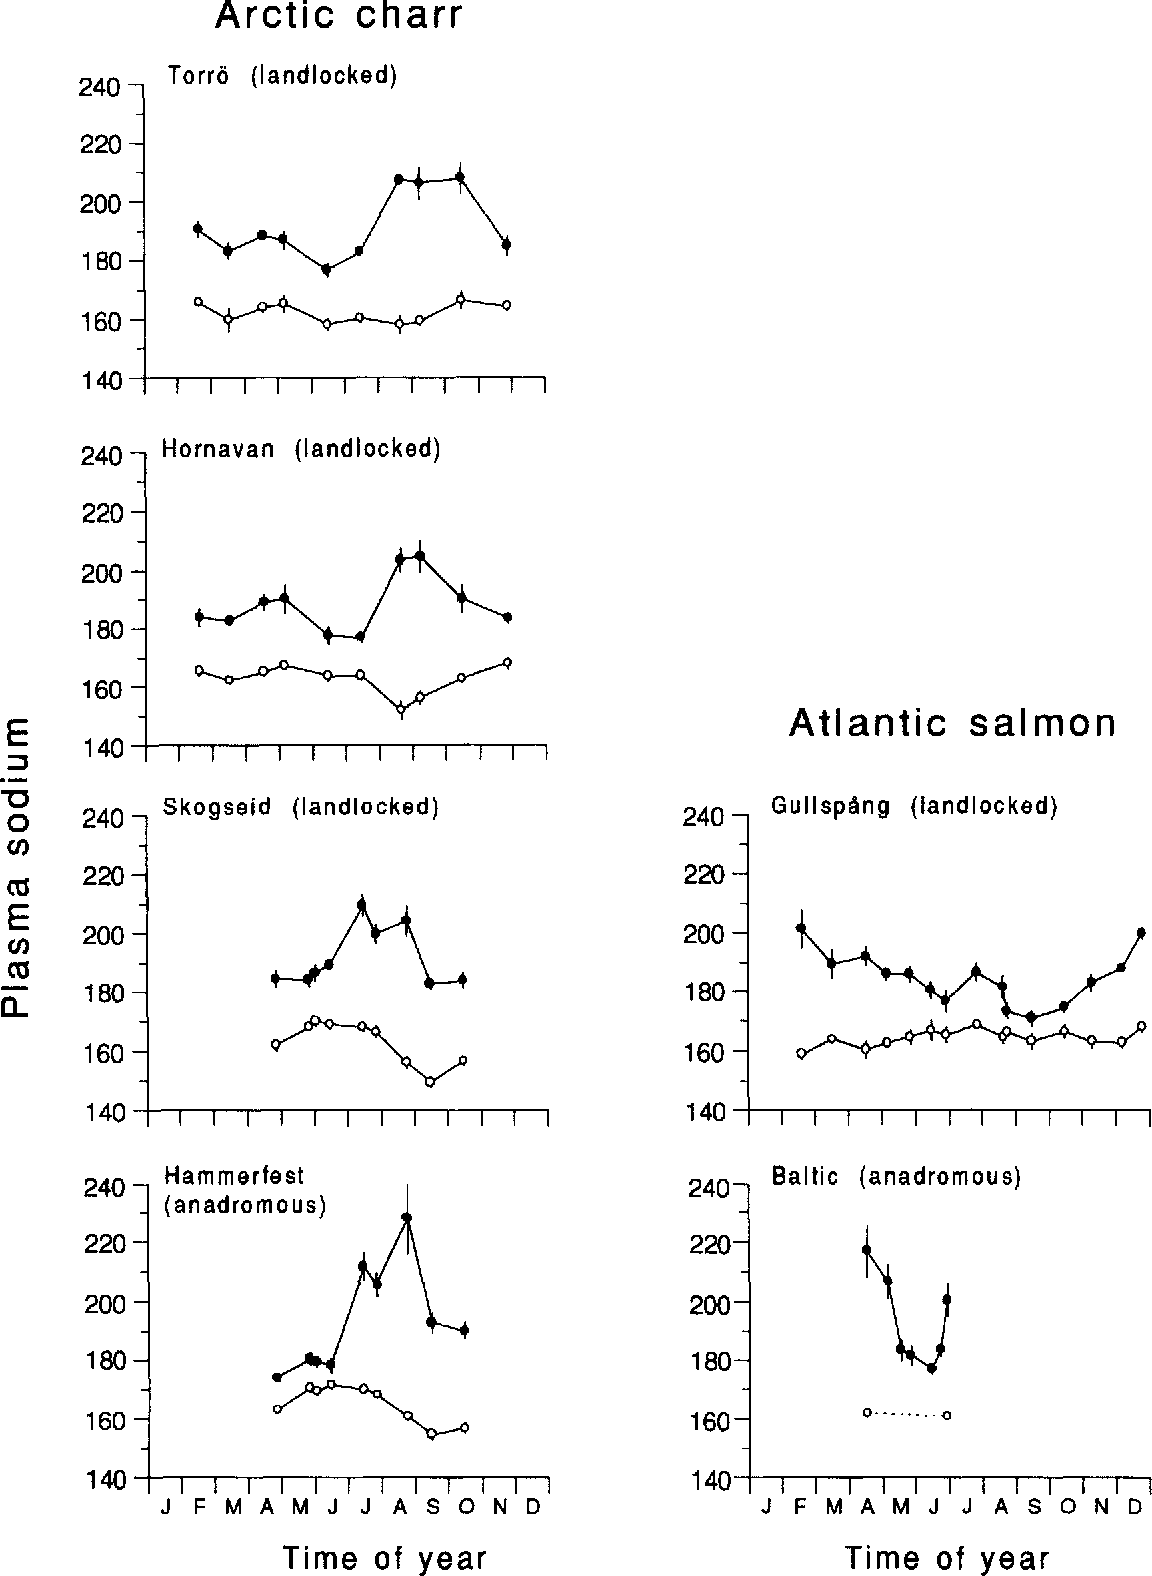 Fig. 2 . Seasonal changes in plasma sodium (in mmol I -') levels (± 1 SE) in different strains of Arctic charr and Atlantic salmon . The solid symbols represent the plasma levels after a 48 h seawater challenge test in 25%o seawater (n =12-15), the open symbols show the levels of the controls (n = 8-10) . Where no error bars are shown the limits lie in the symbols .